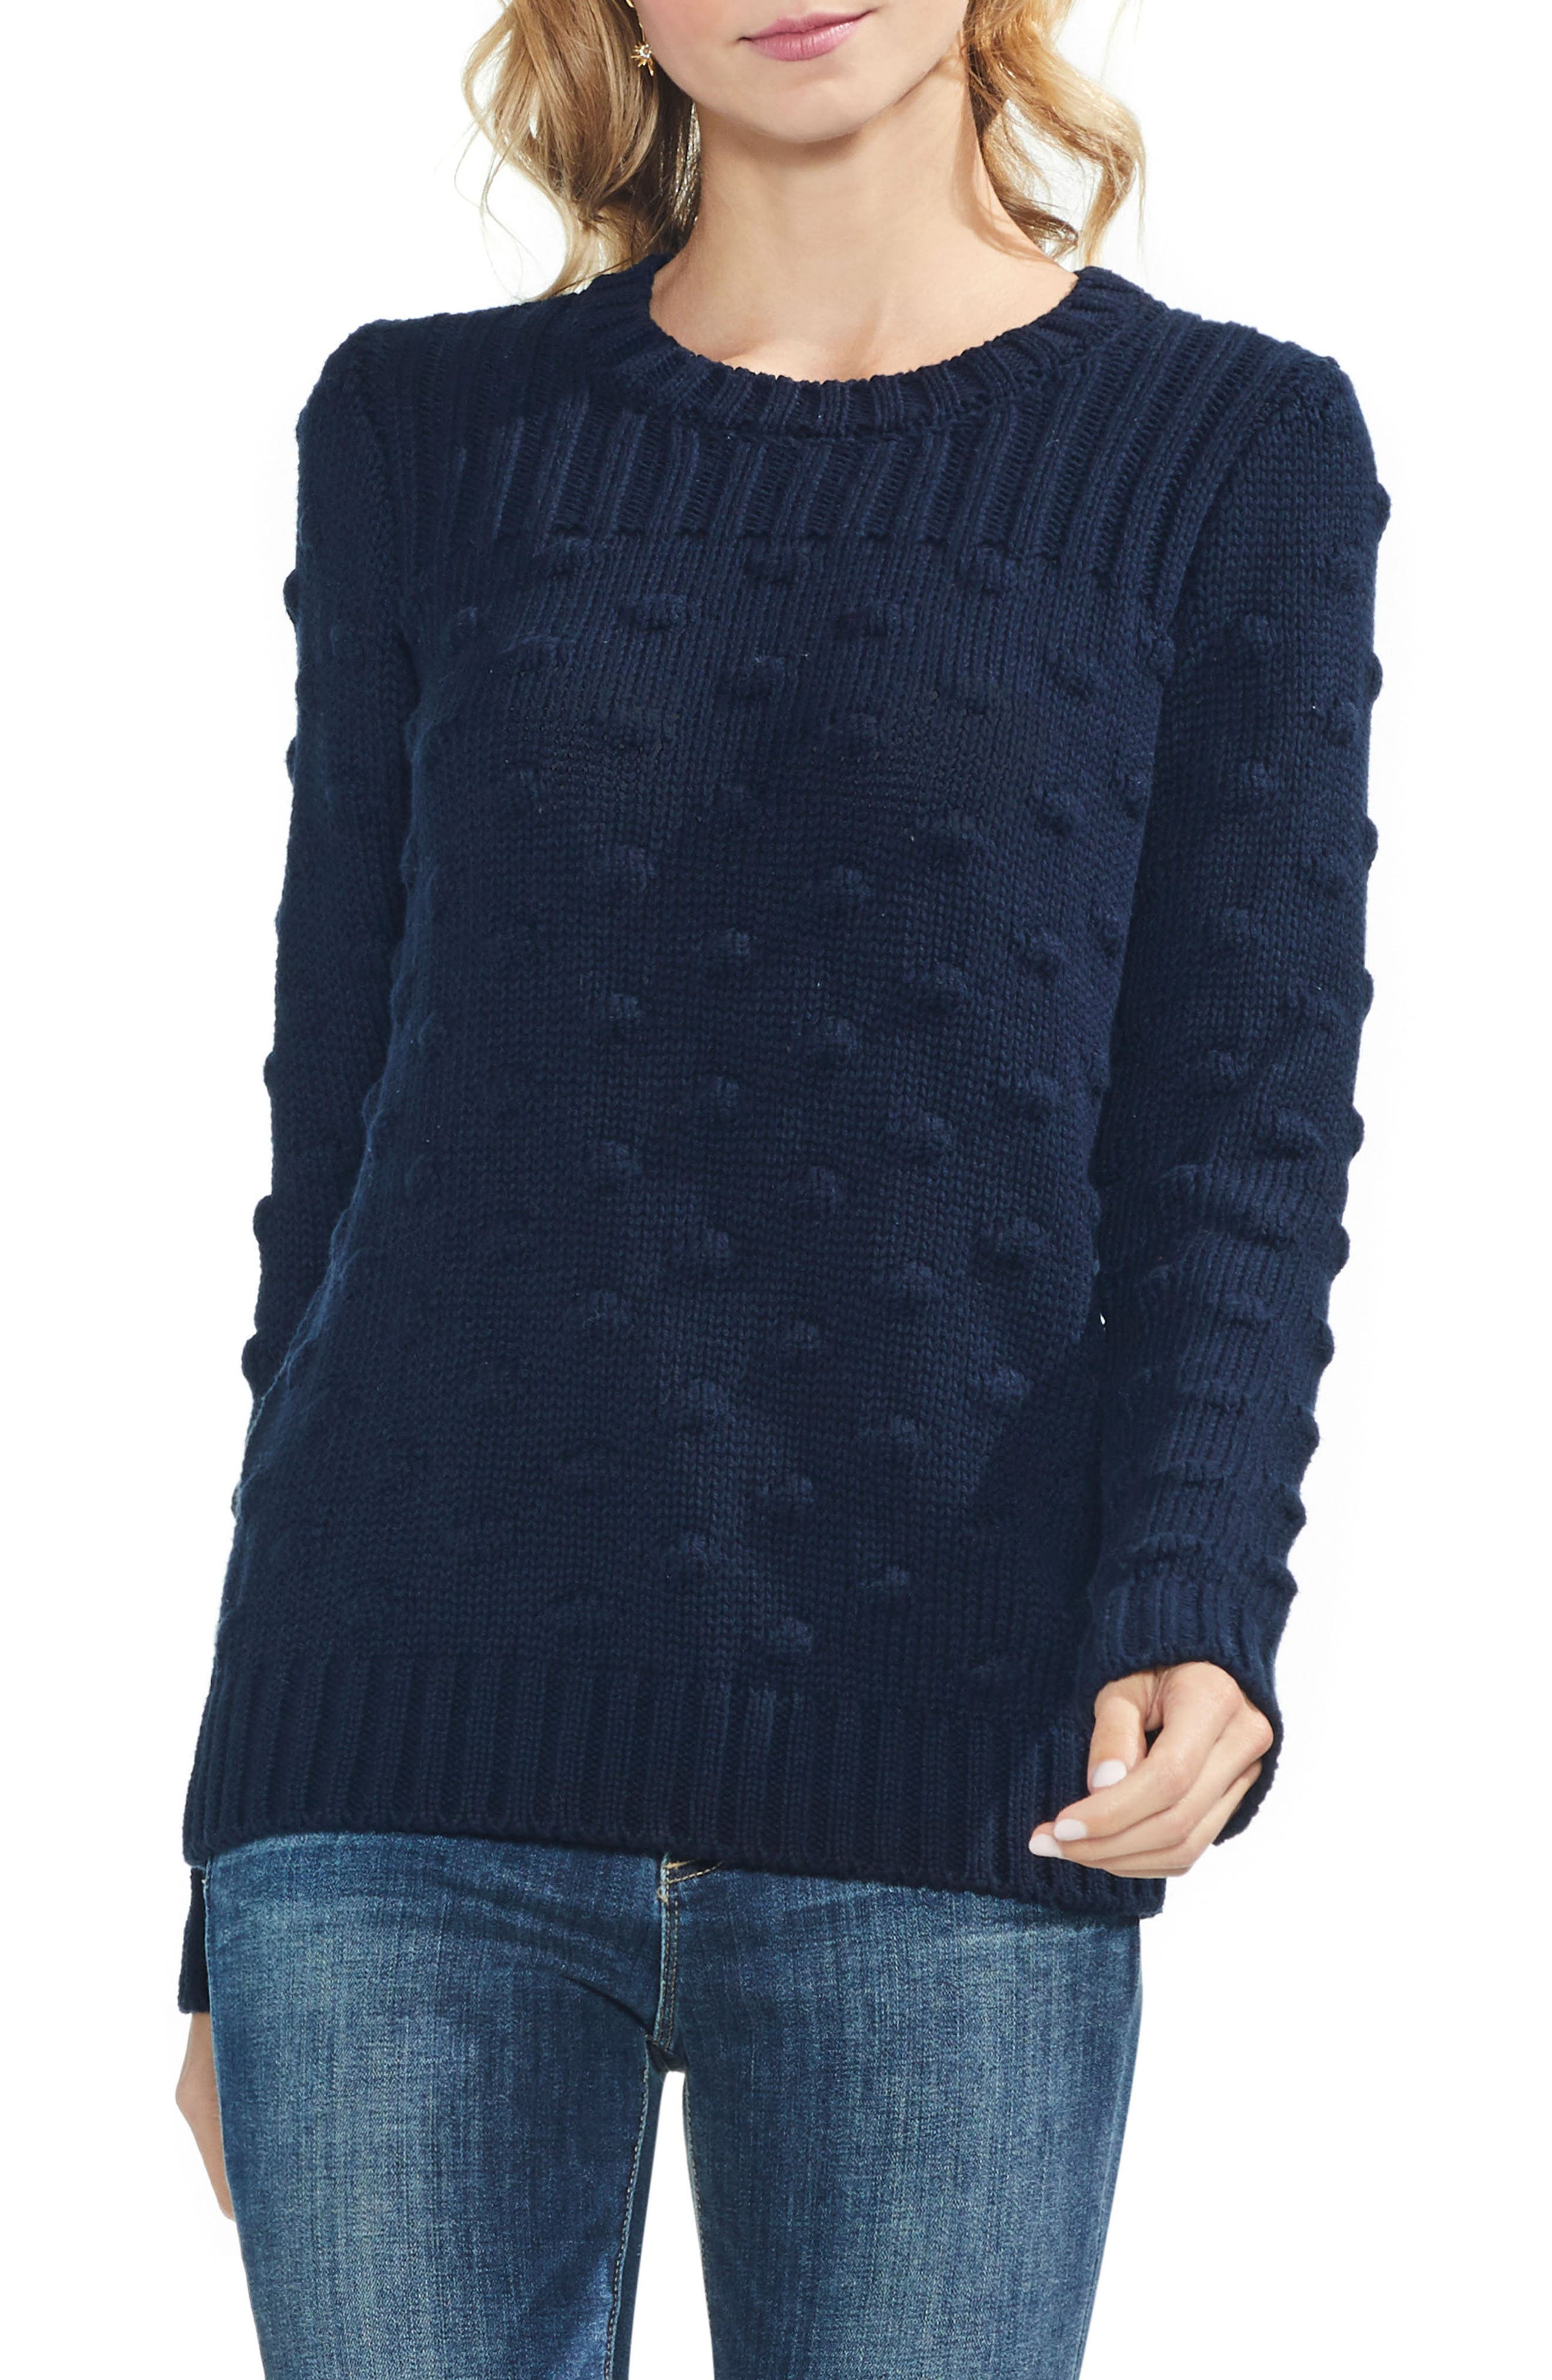 Vince Camto Popcorn Stitch Cotton Sweater,                         Main,                         color, CLASSIC NAVY